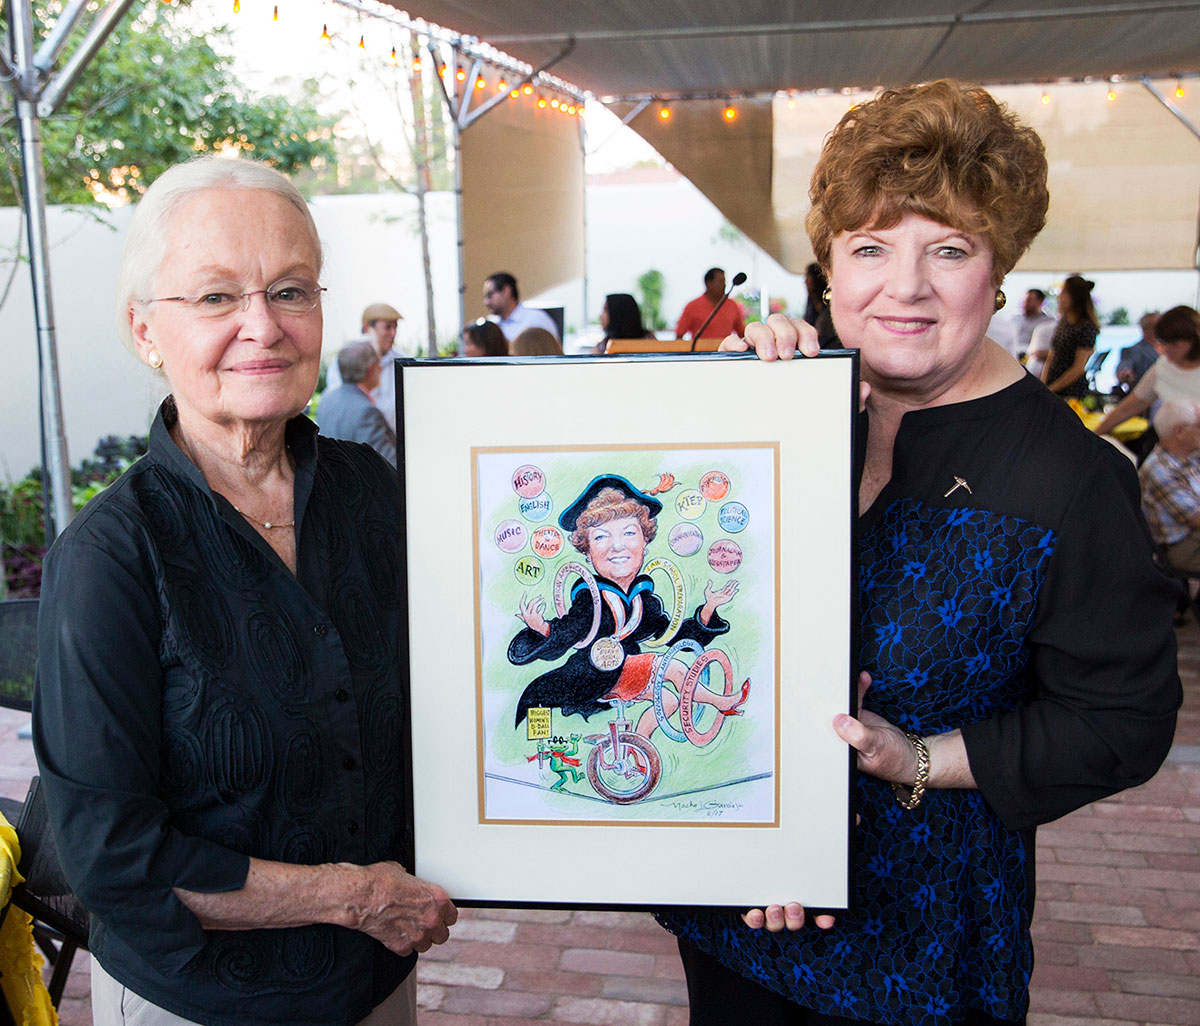 UTEP College of Liberal Arts Dean Patricia Witherspoon, Ph.D., (right) retired in August after 17 years at UTEP. Witherspoon and UTEP President Diana Natalicio (left) hold a caricature of Witherspoon by Nacho L. Garcia. Photo by UTEP News Staff